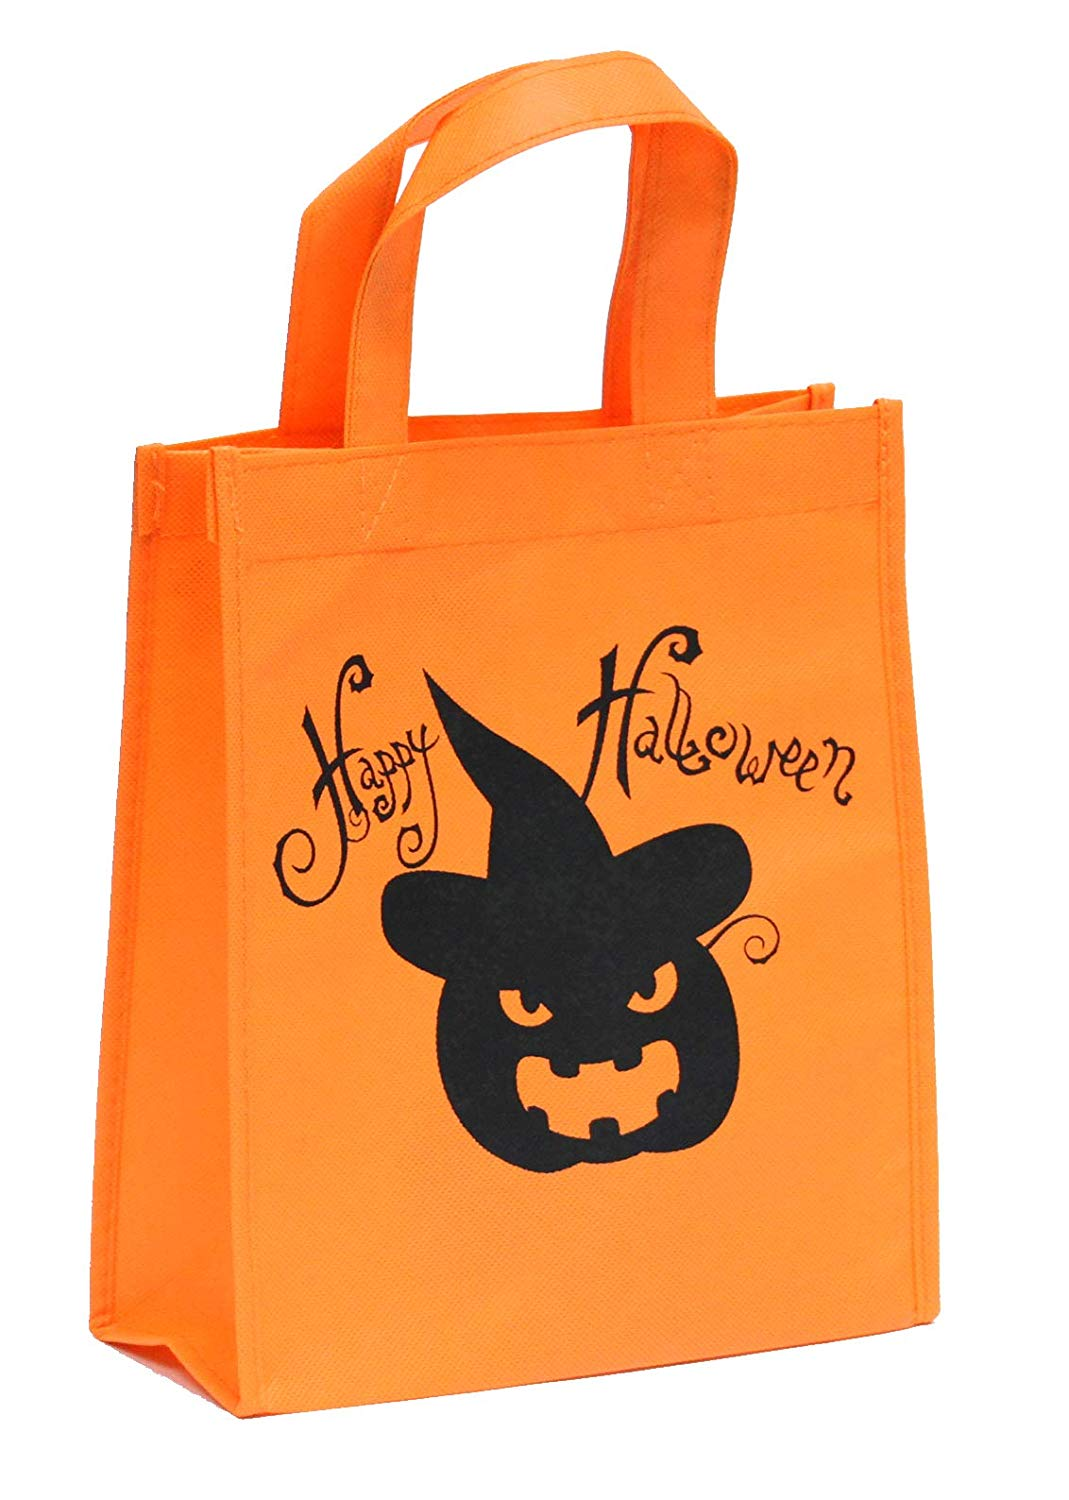 Halloween Reusable Trick or Treat Candy Bag [Orange Pumpkin]